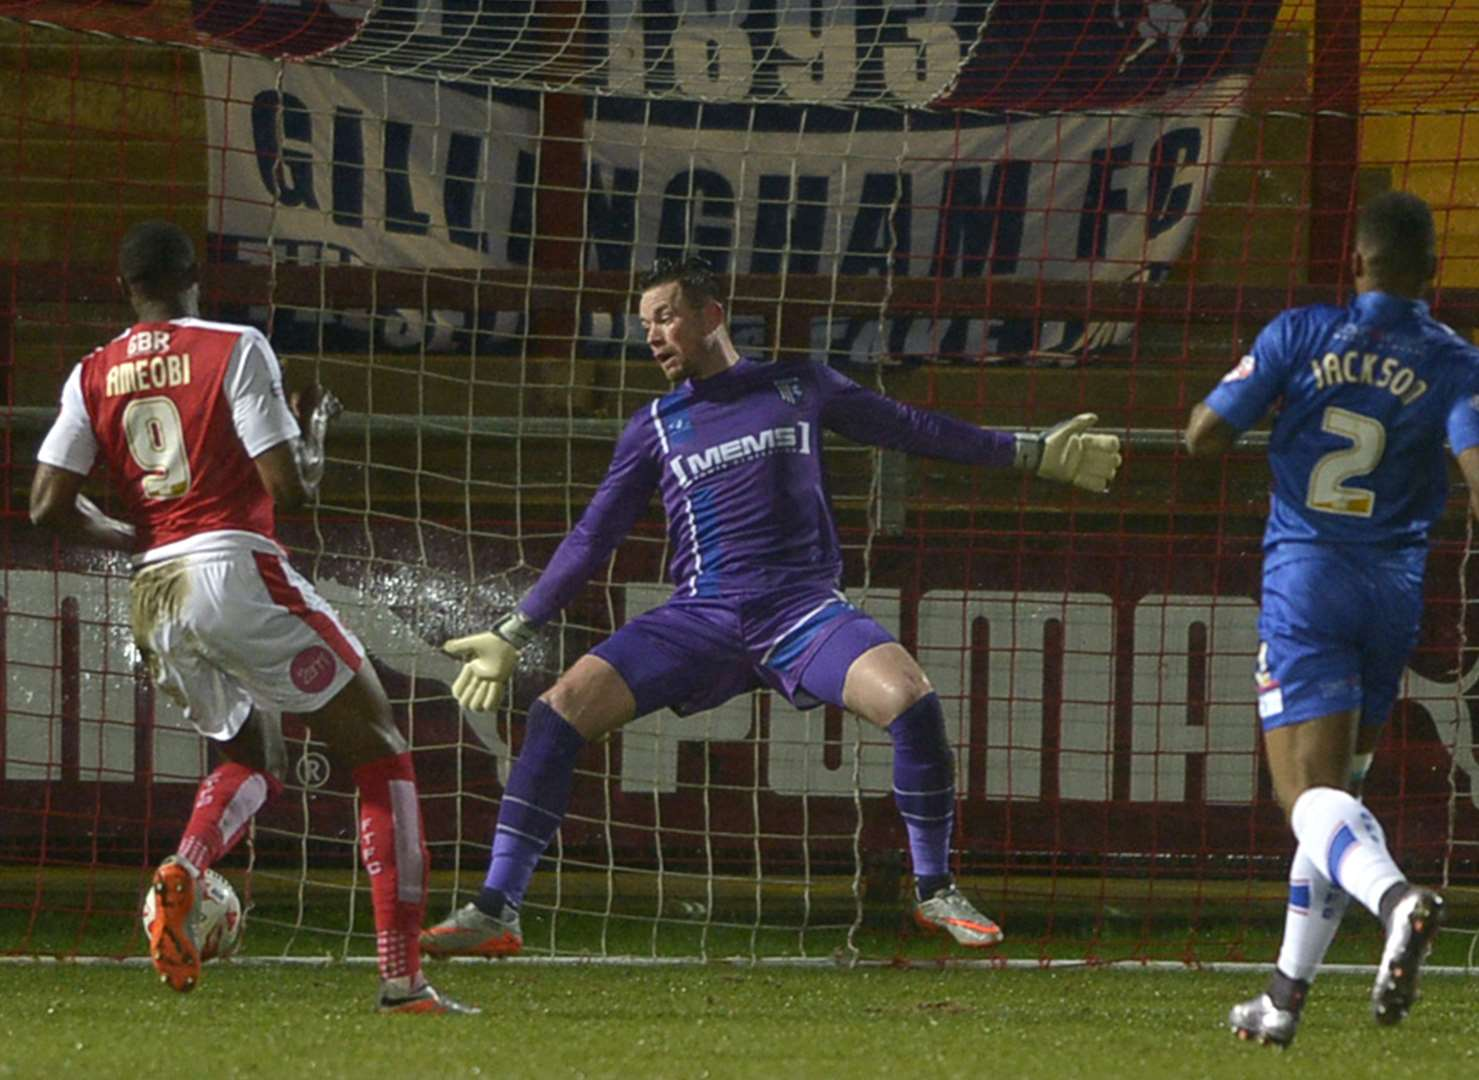 Fleetwood Town v Gillingham - in pictures